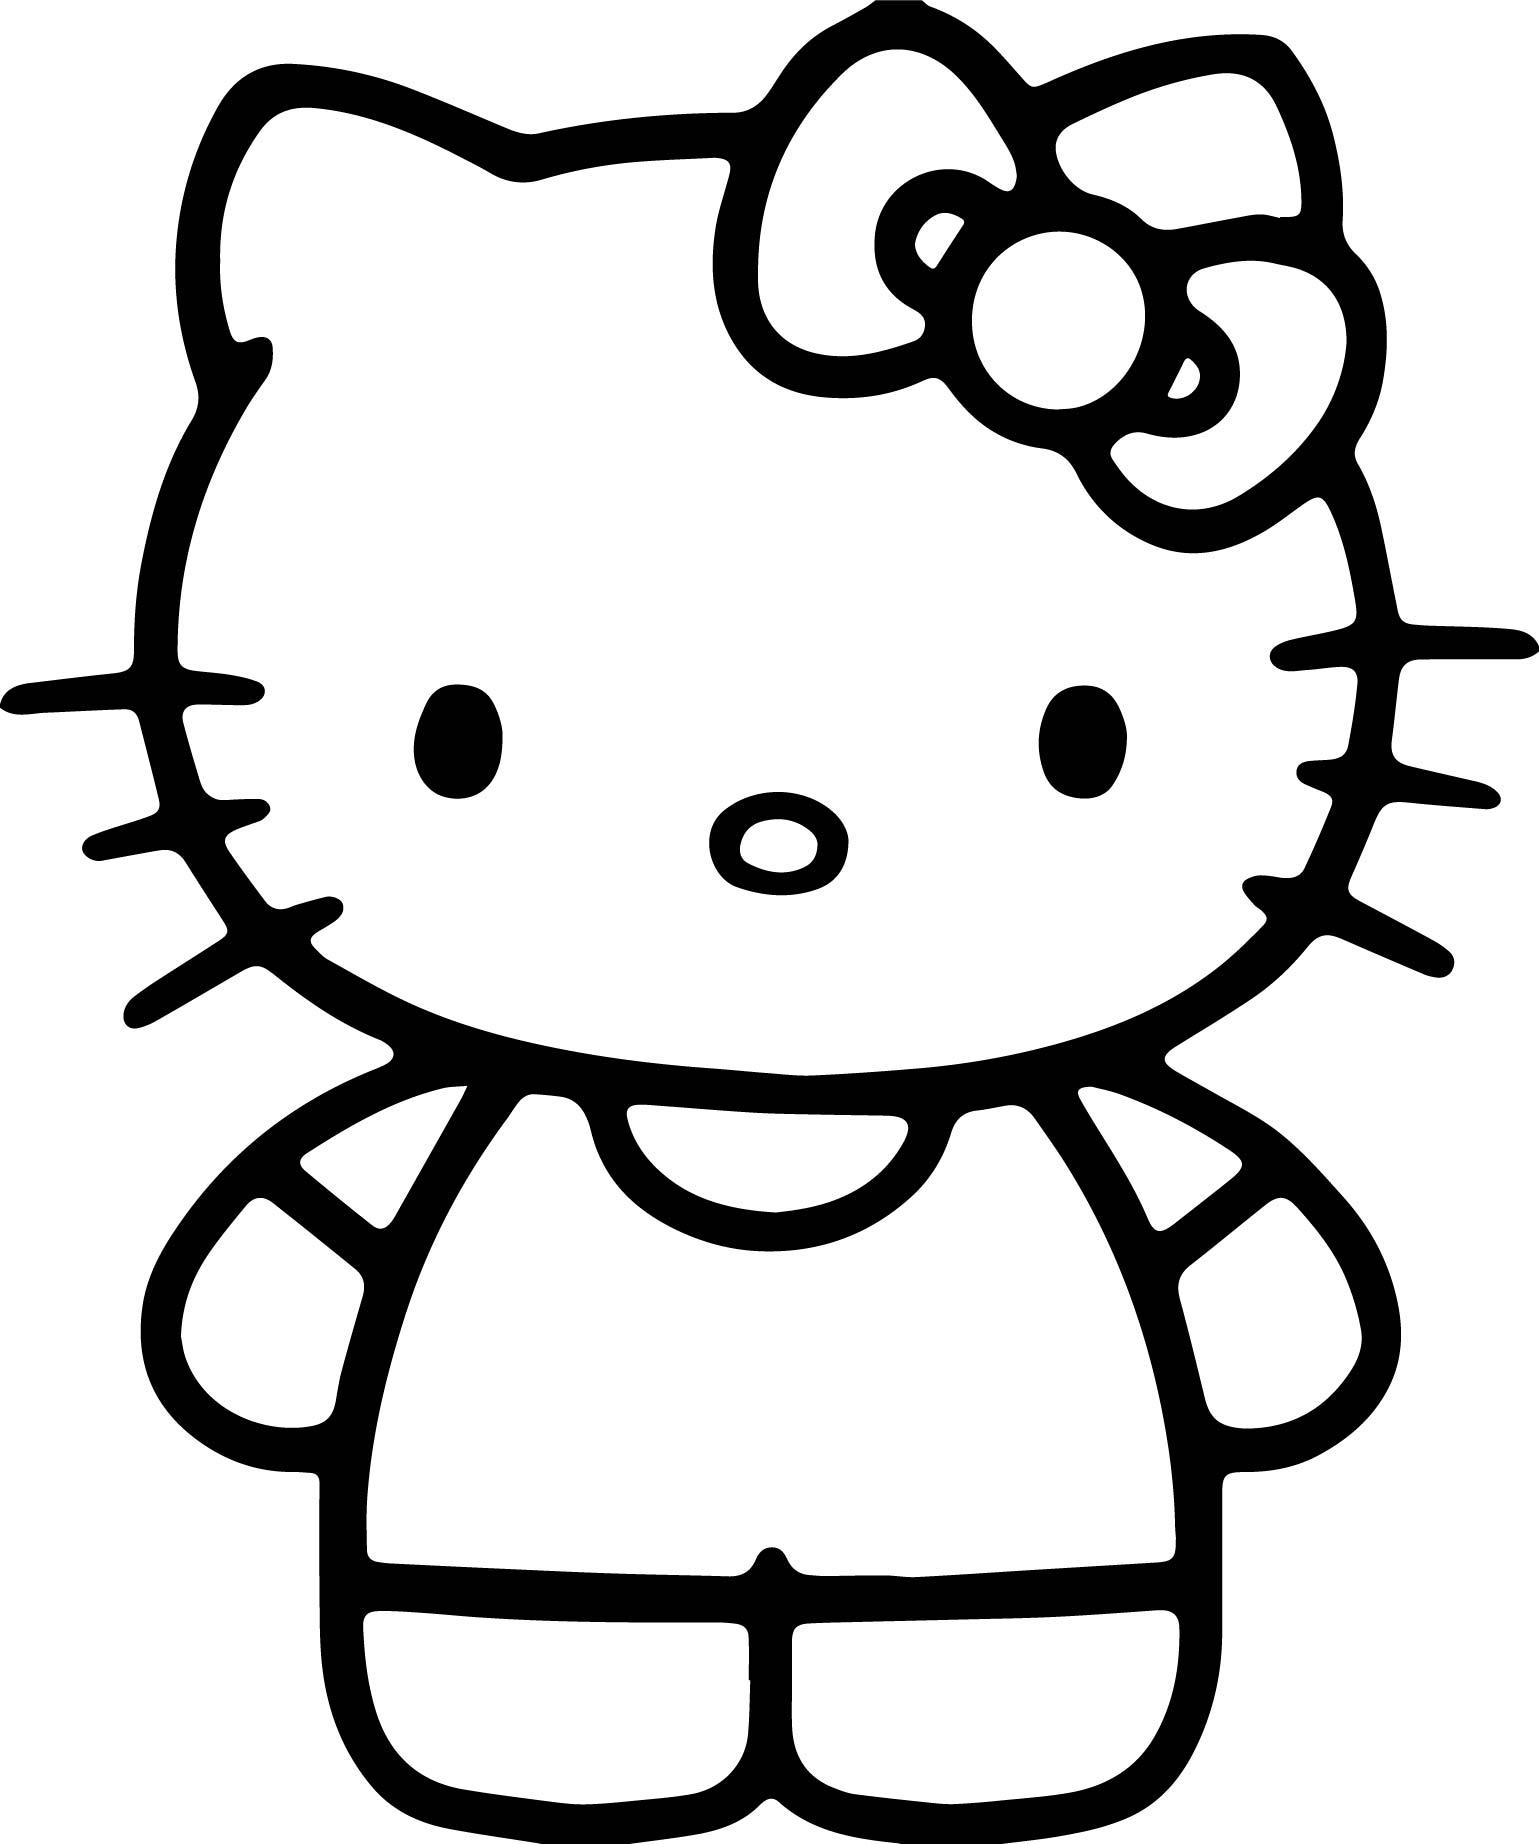 coloring sheet for 3 year old coloring pages for 3 year olds coloring home 3 year coloring sheet for old